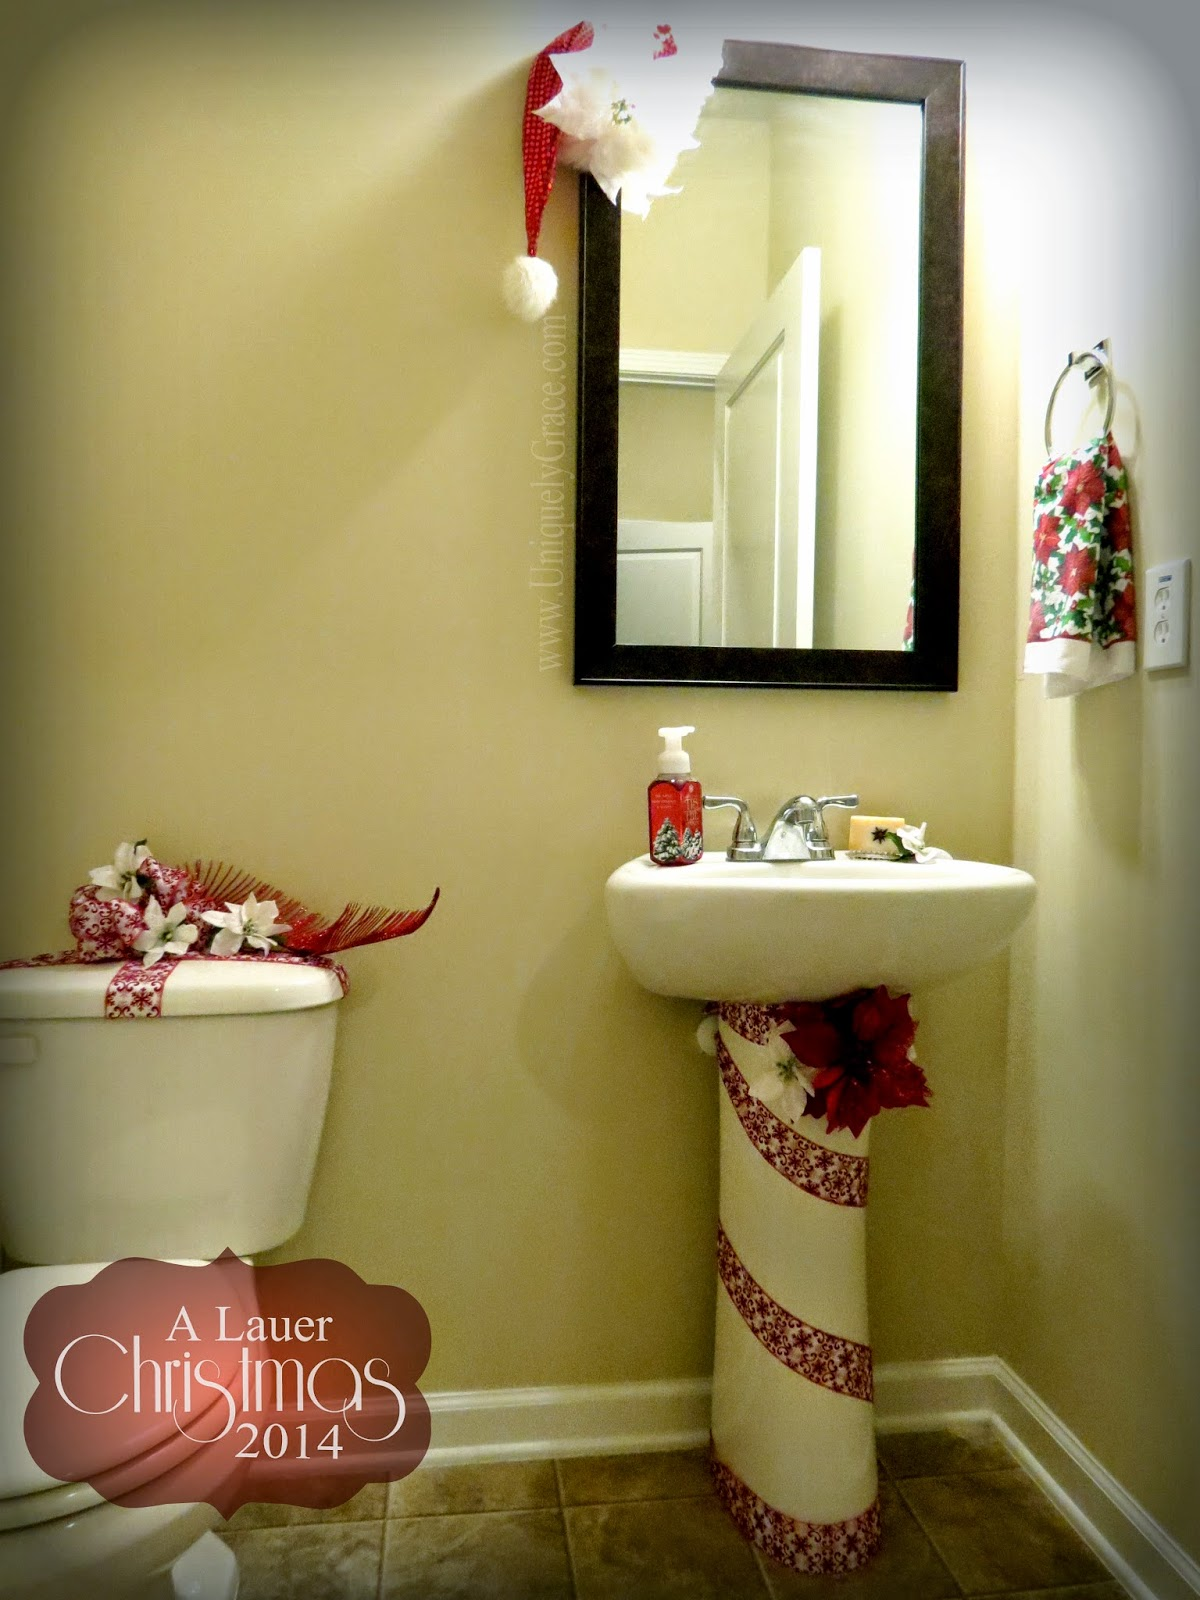 uniquely grace a lauer christmas home tour cardinals candy canes burlap kitchen bath. Black Bedroom Furniture Sets. Home Design Ideas